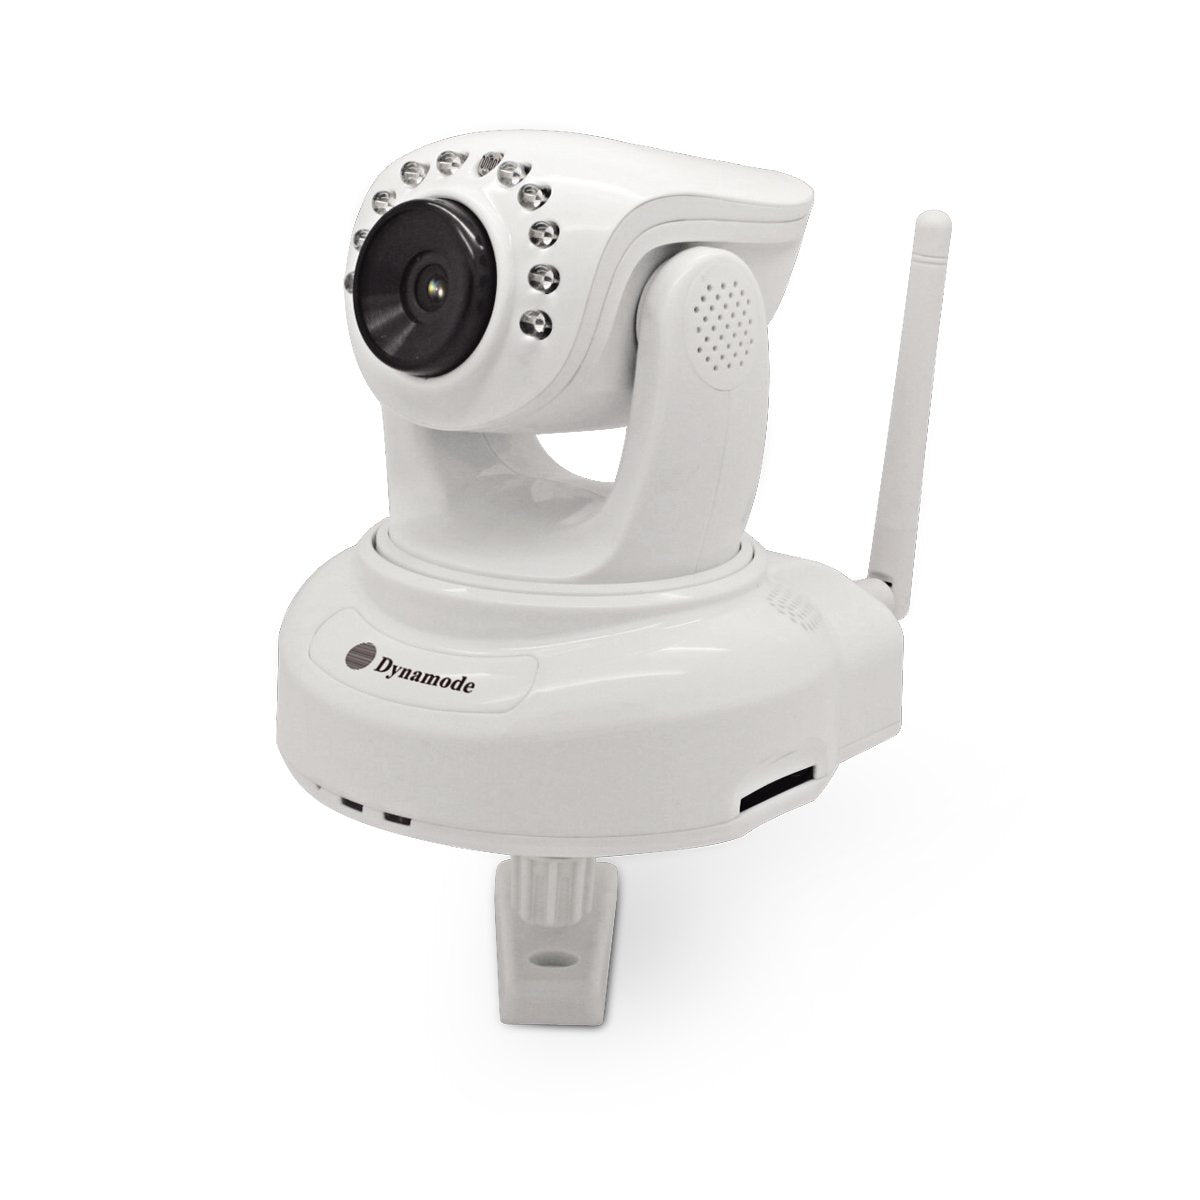 DYN-625 - HD 720p, 6m IR, PTZ IP Wireless Camera